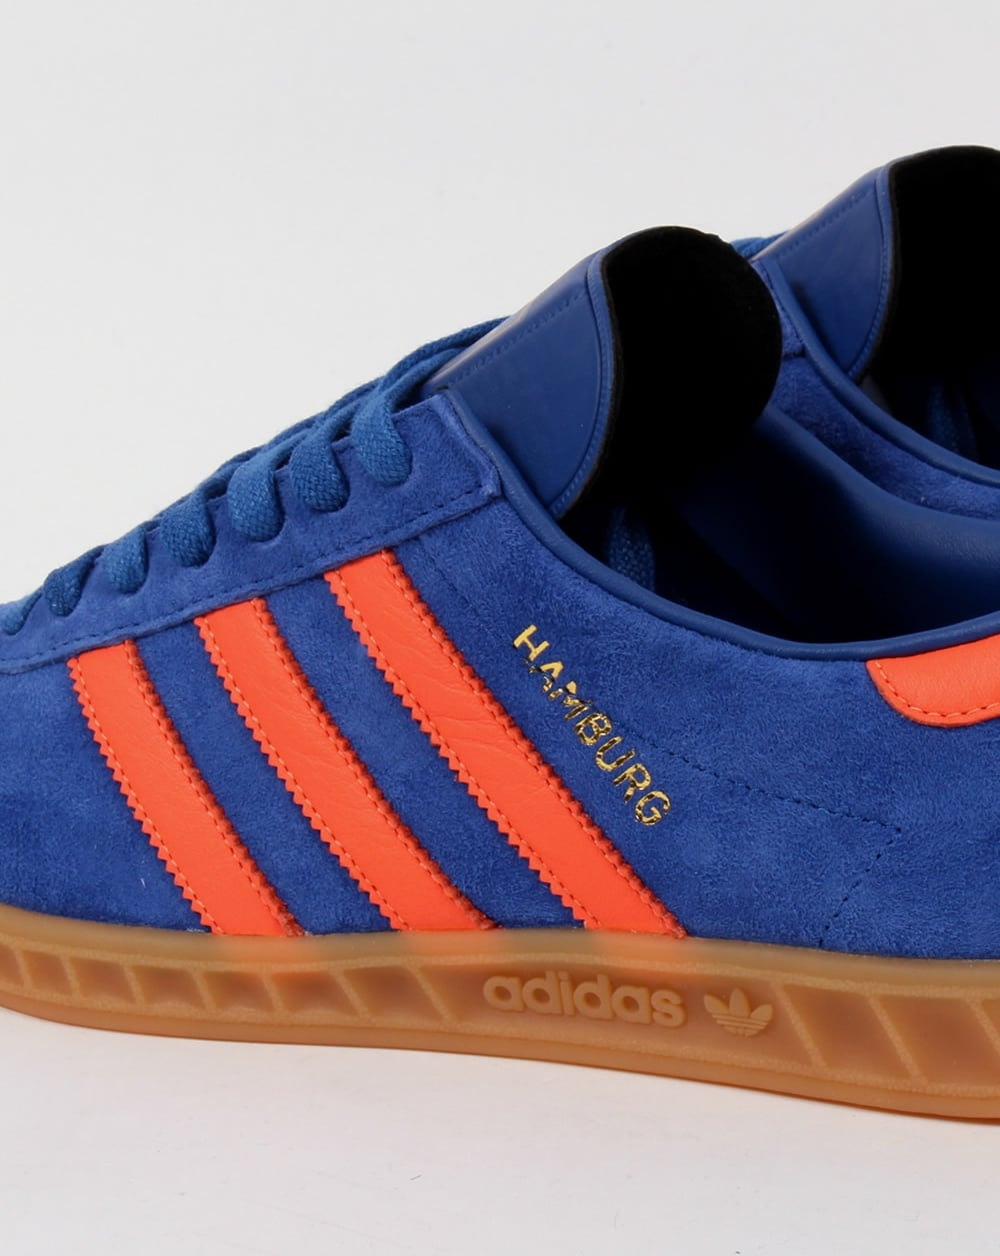 Adidas Shoes Orange Blue